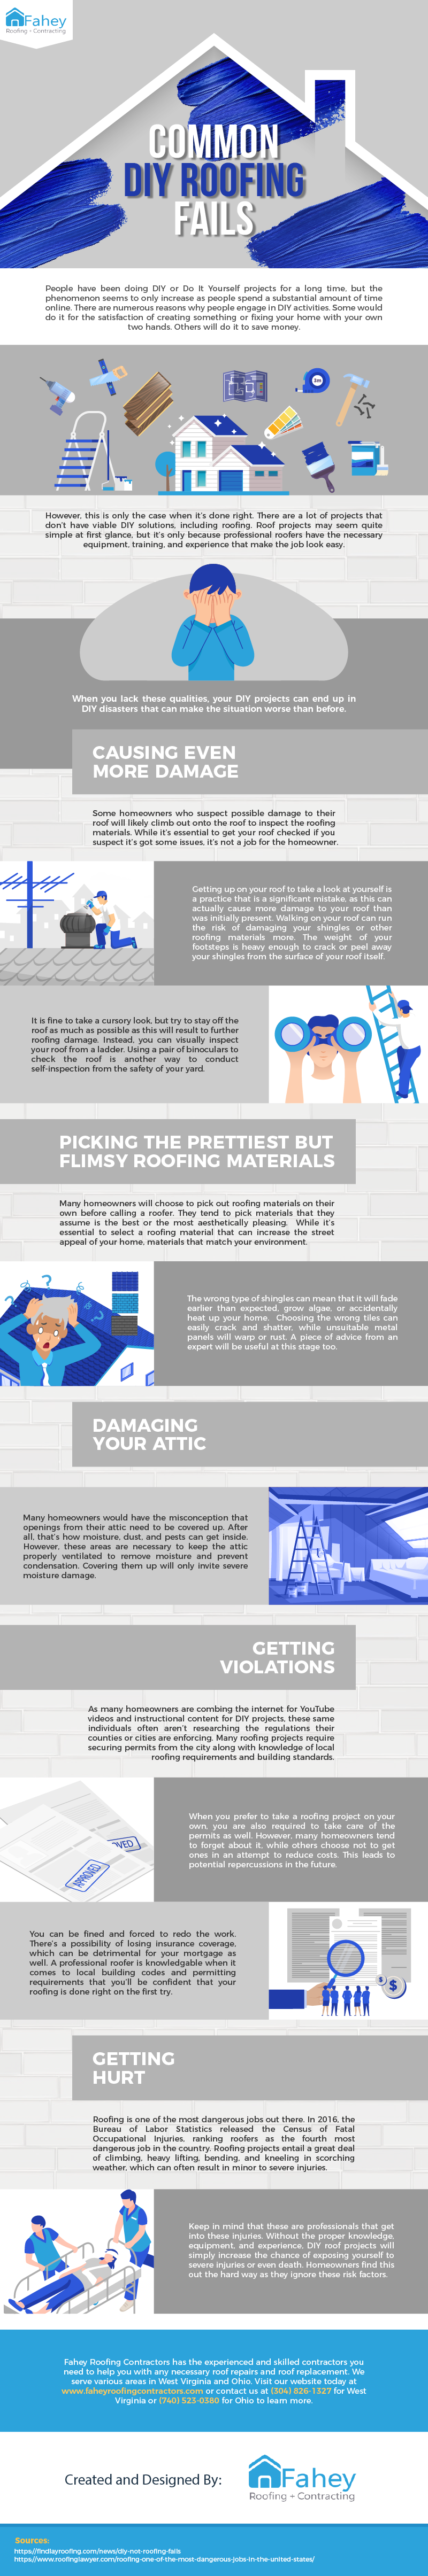 Common DIY Roofing Fails